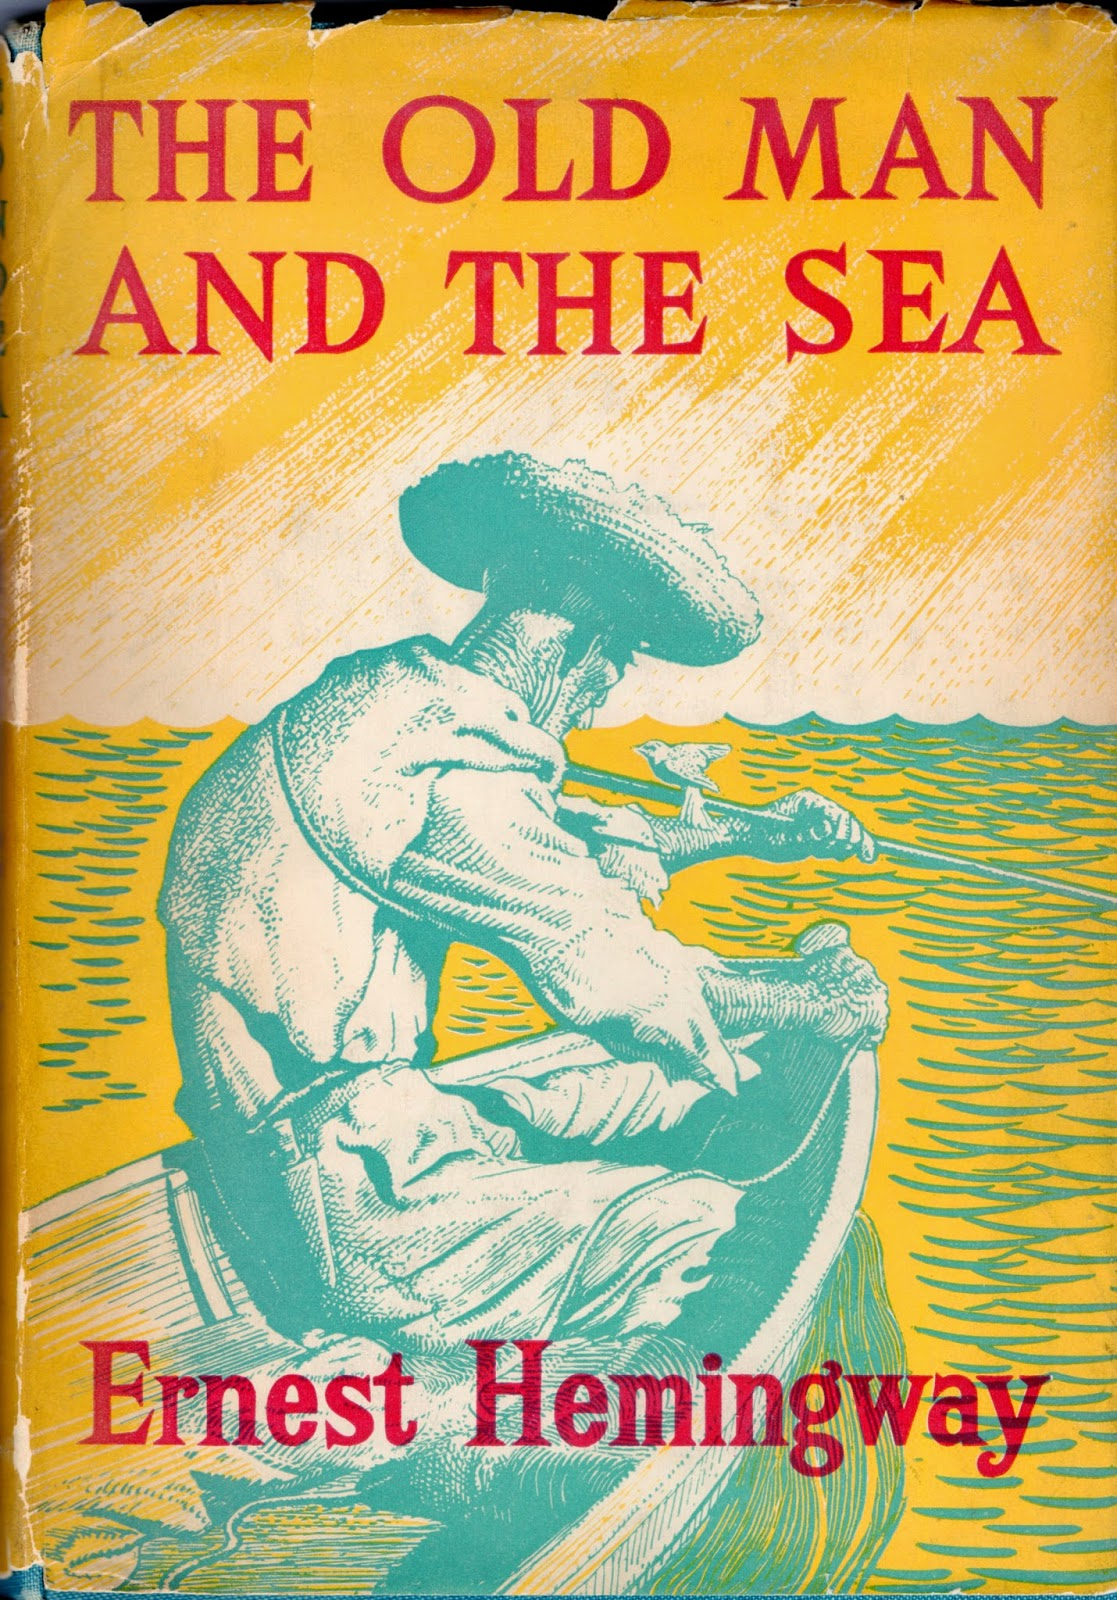 The hero old man santiago in the novel the old man and the sea by ernest hemingway